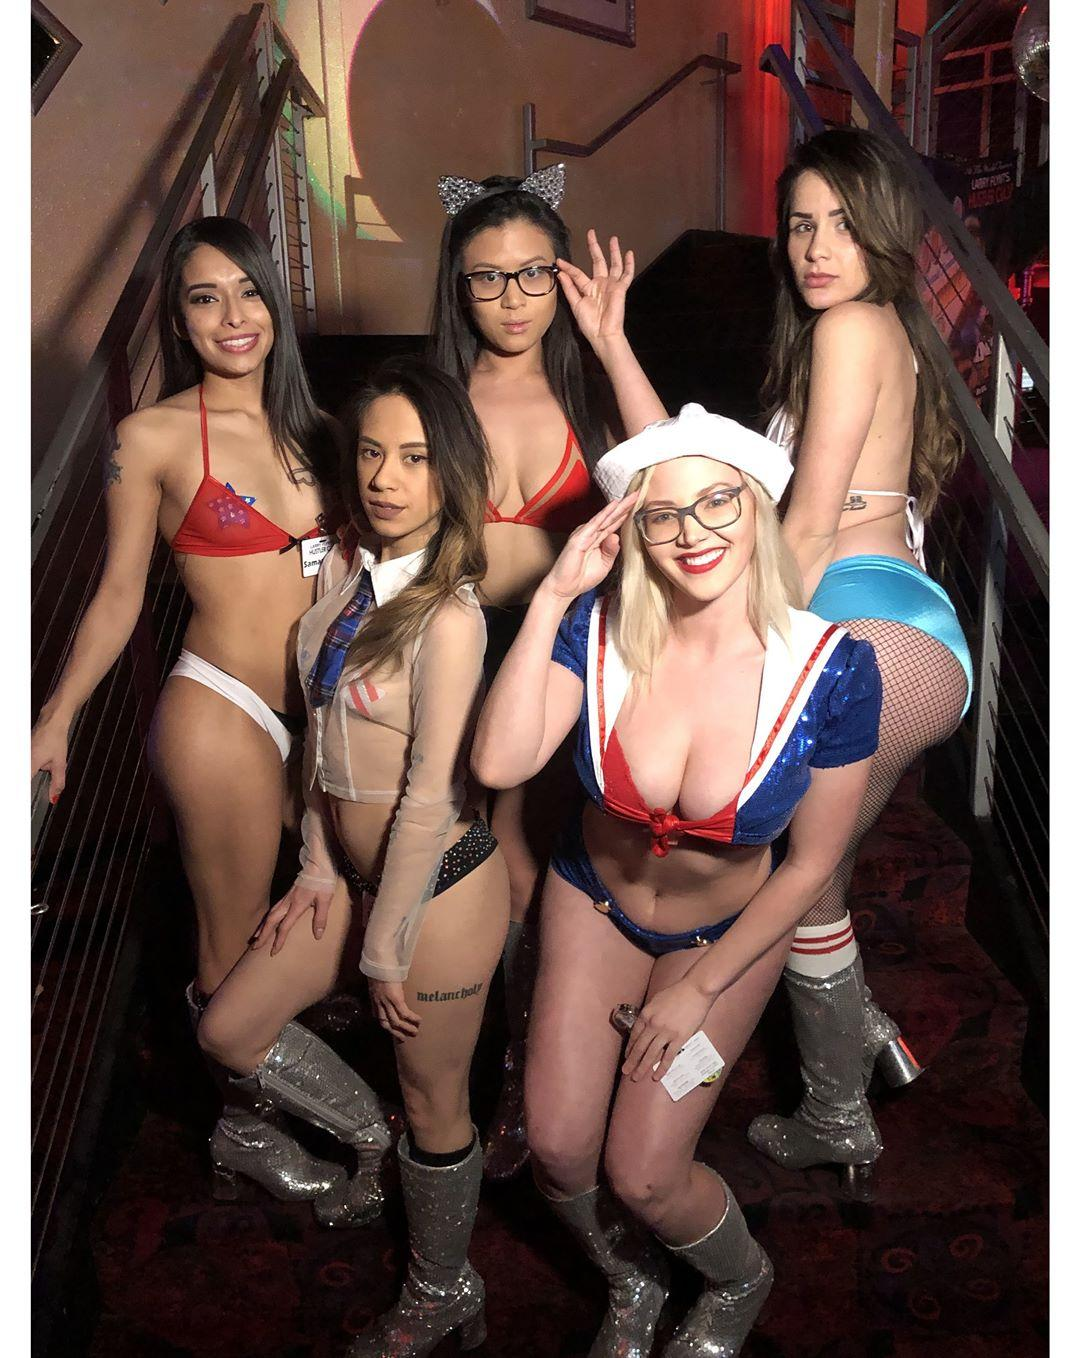 Larry Flynt Hustlers Club Vegas - Free Transportation - No Cover - Larry Flints Hustlers Las Vegas